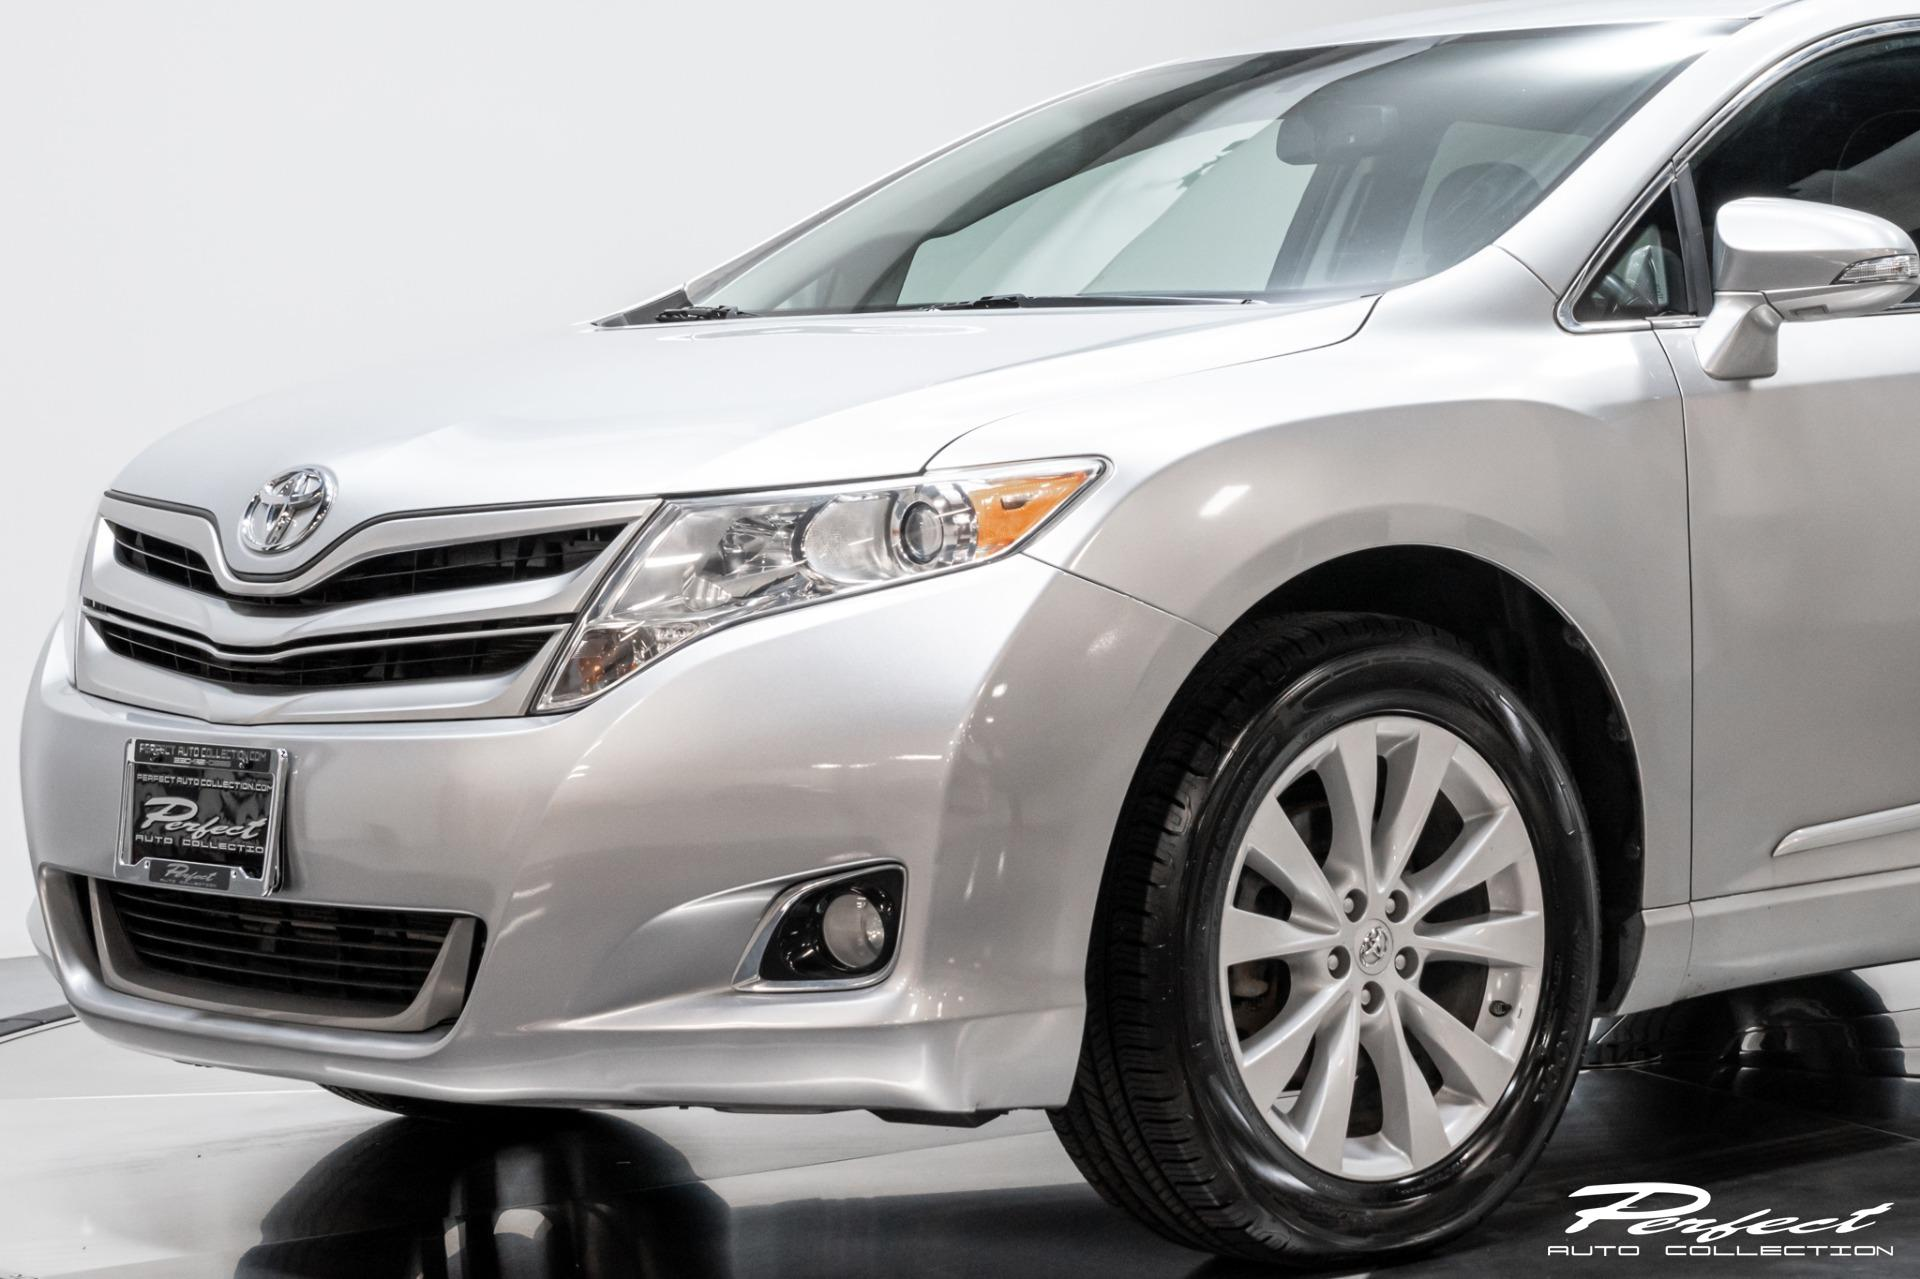 Used 2015 Toyota Venza XLE for sale Sold at Perfect Auto Collection in Akron OH 44310 3